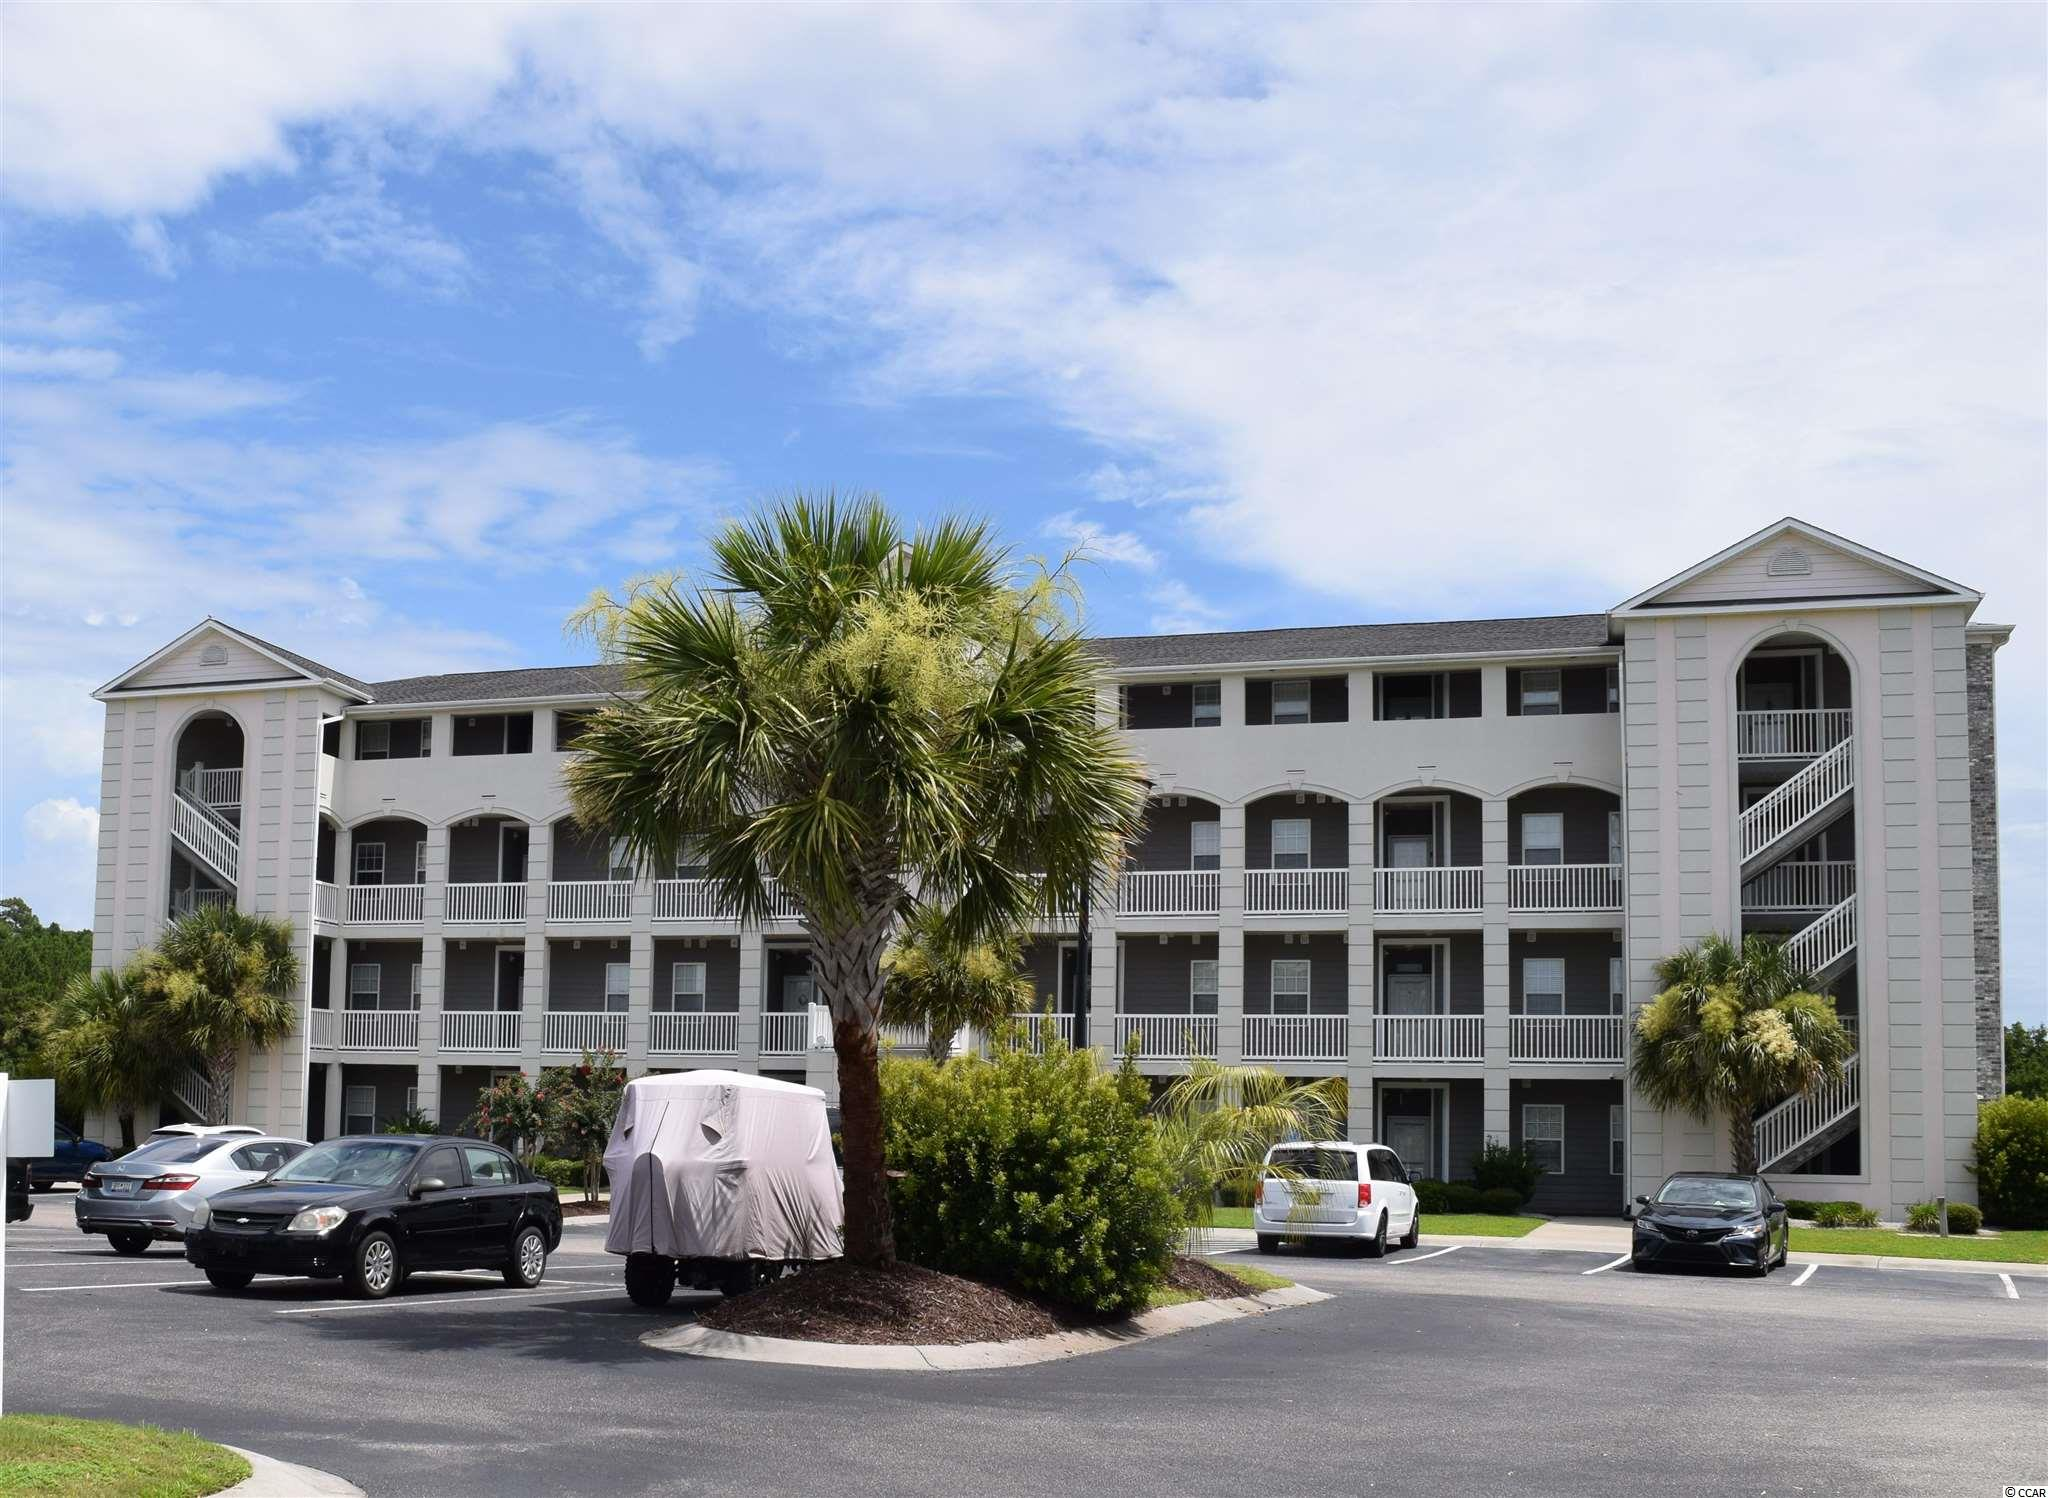 Wow.  There are so many wonderful features to love about this 3 bedroom fully furnished condo.  It is a top floor end unit with a vaulted ceiling in an ELEVATOR building.  The family room and 1st bedroom have a great water view.  The community has waterway amenities, pool and fitness center.  The home is spacious, has a good sized screened balcony, ample closet space, nice laundry area, kitchen and bathrooms. This is a golf cart, boater and motorcycle friendly community.  This upscale neighborhood is very well maintained and has a lush feeling with lots of open space, water and mature landscaping.  Carolina Yacht Landing is in a very convenient location to all the fun, shopping and dining in Little River and North Myrtle Beach.